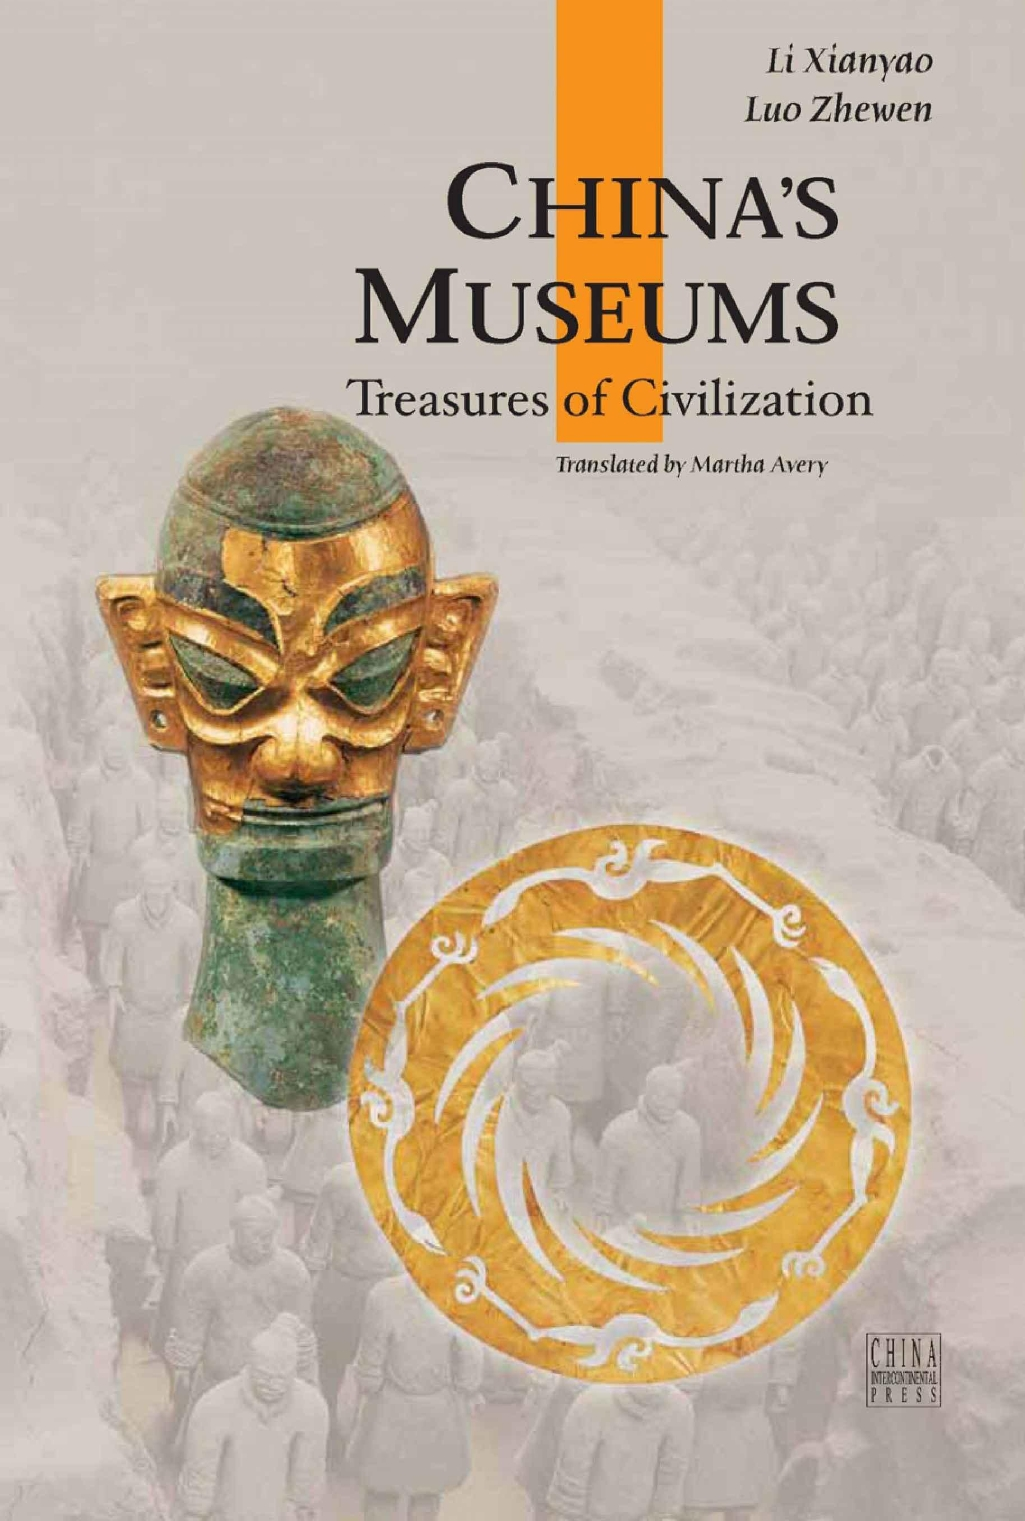 China's Museums Treasures of Civilization